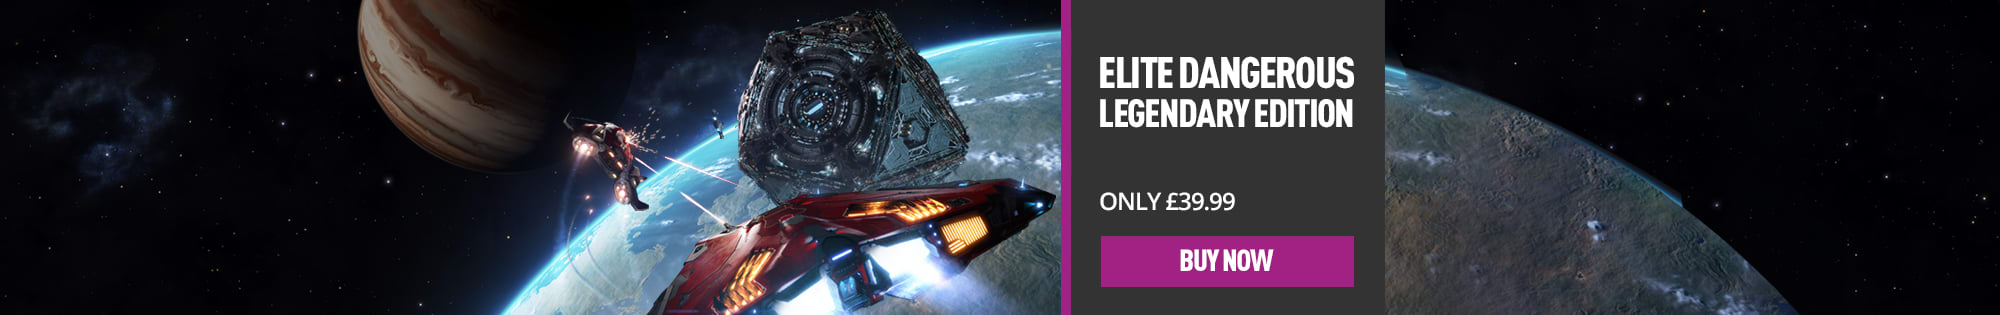 Elite Dangerous for PlayStation 4 & Xbox One - Homepage Banner